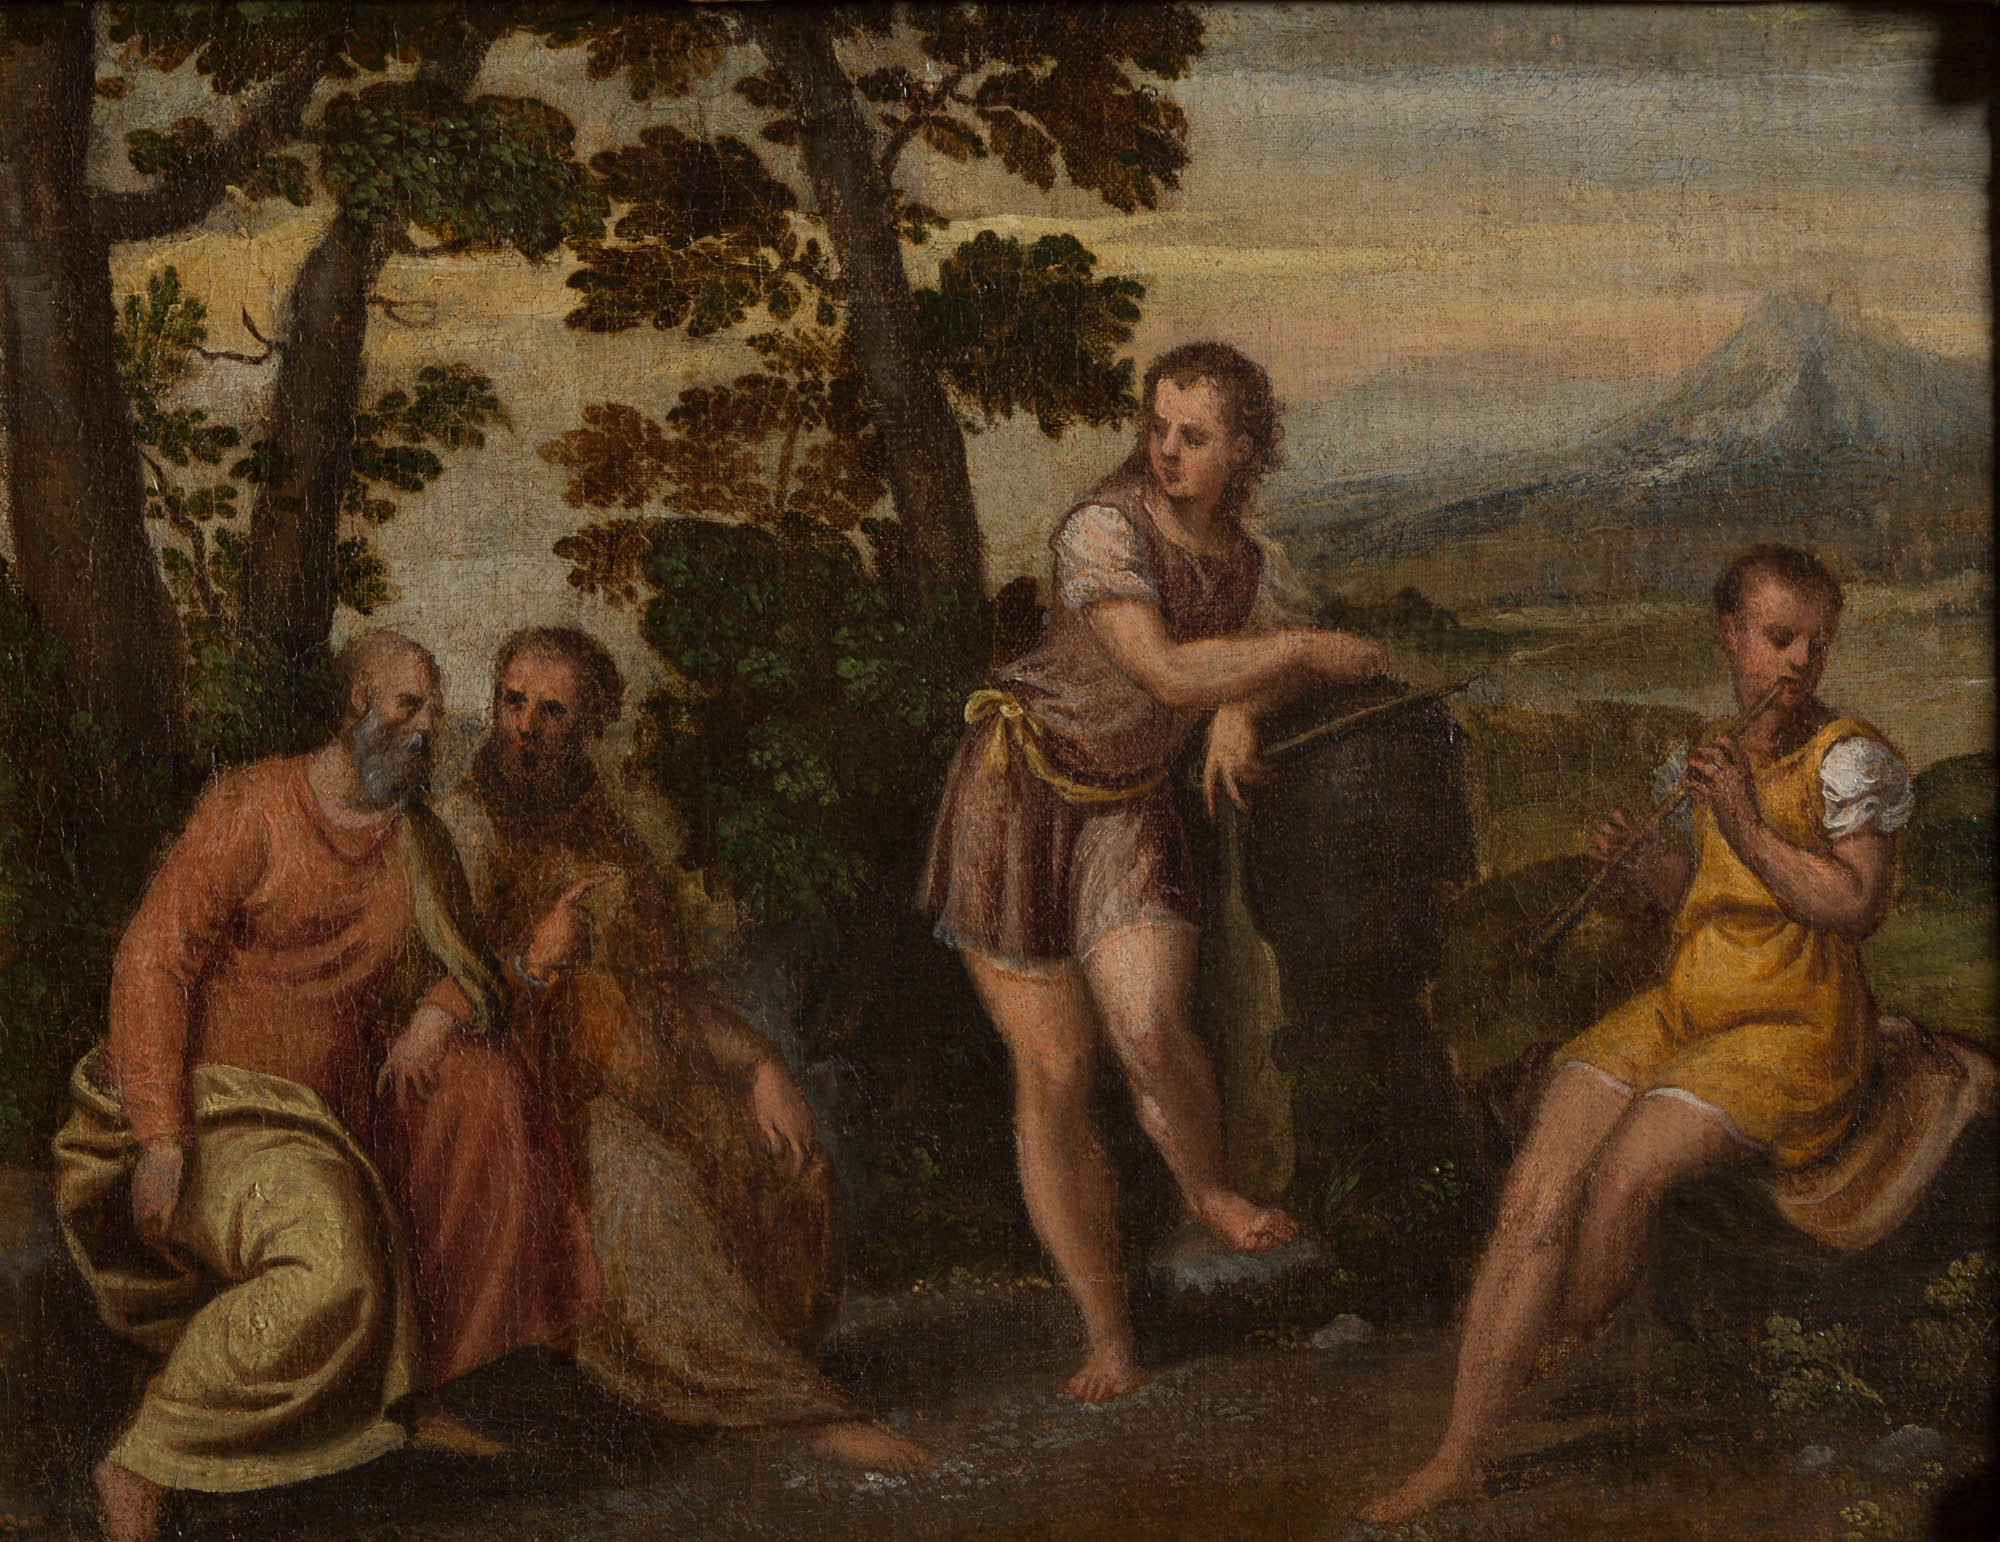 An Allegory of Youth and Old Age, Circle of Andrea Meldolla, lo Schiavone (1522-1563).